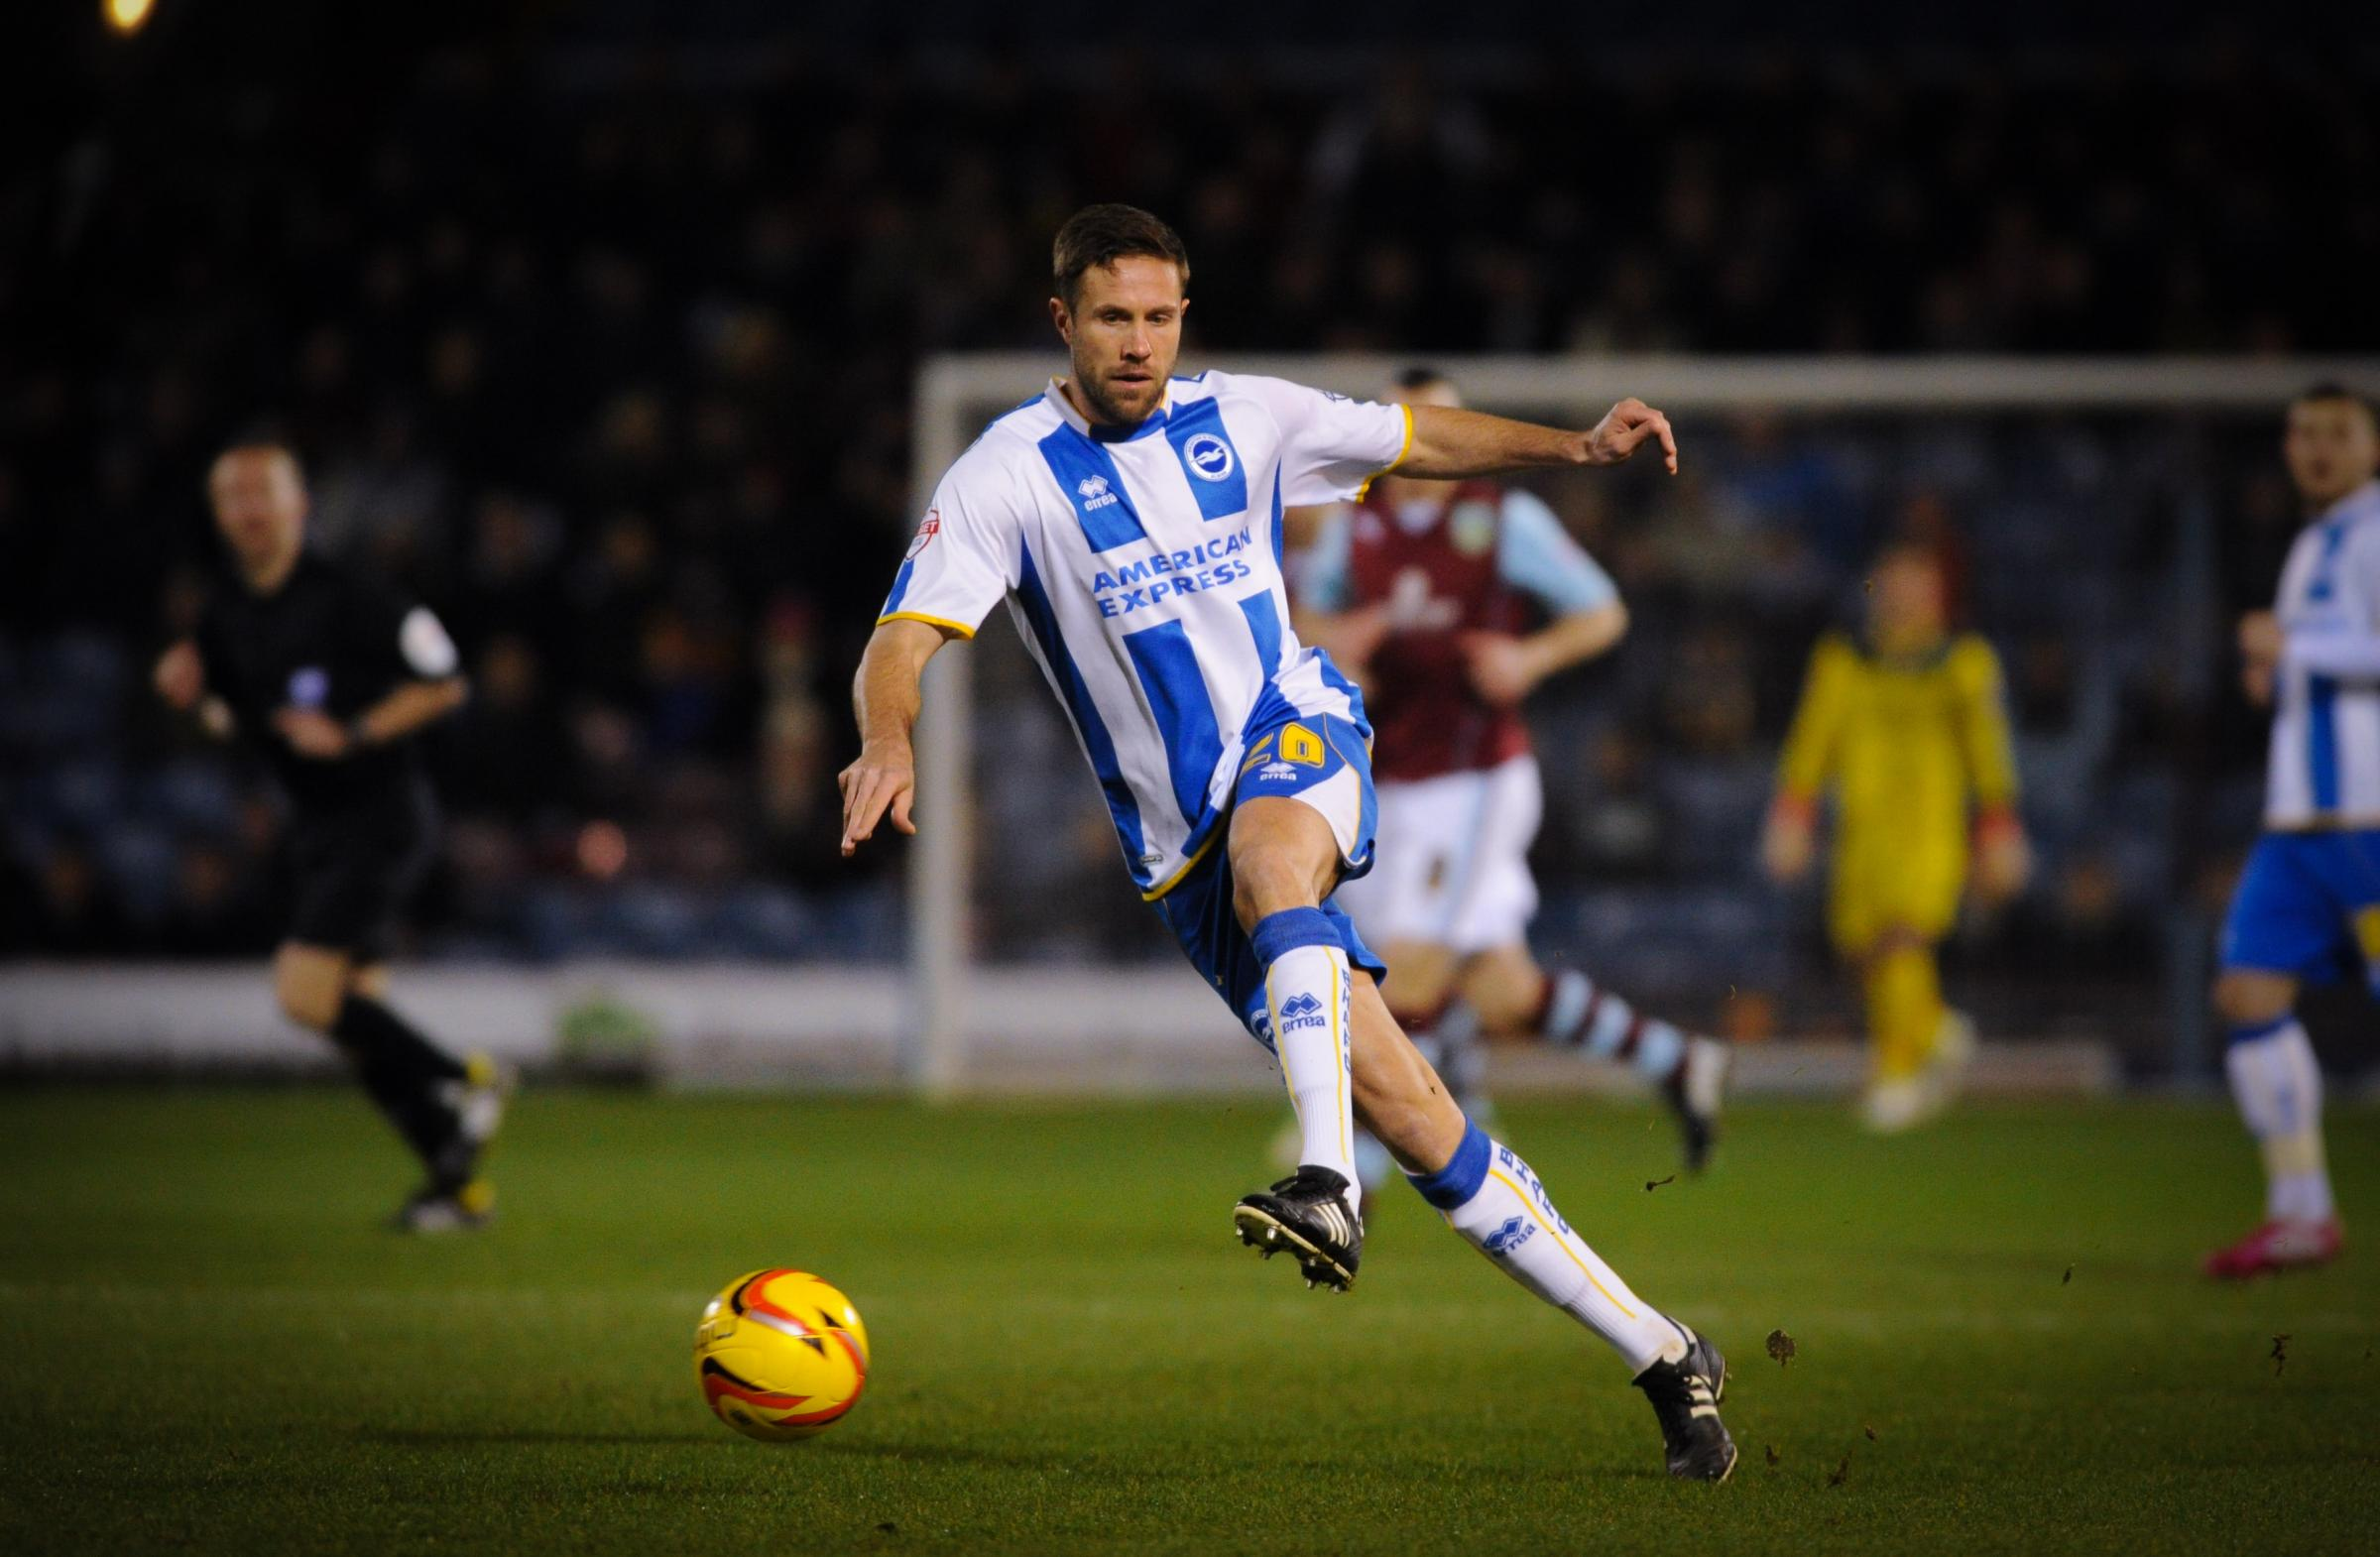 Matt Upson is open to contract talks on another one-year deal